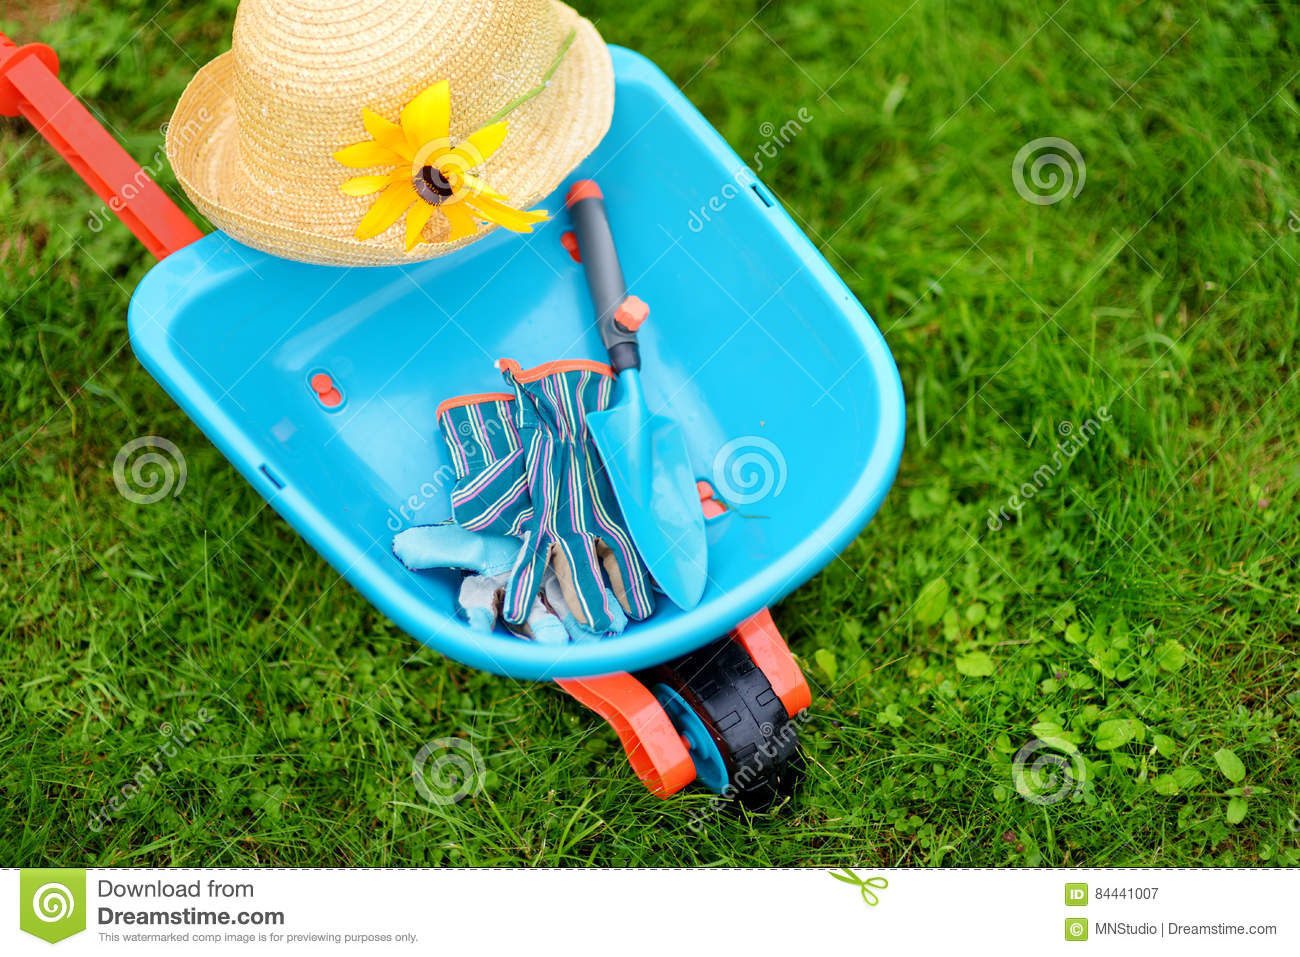 Toy Wheelbarrow, Childrens Garden Gloves And Garden Tools. Cute Toys For  Outdoor Gardening Game.